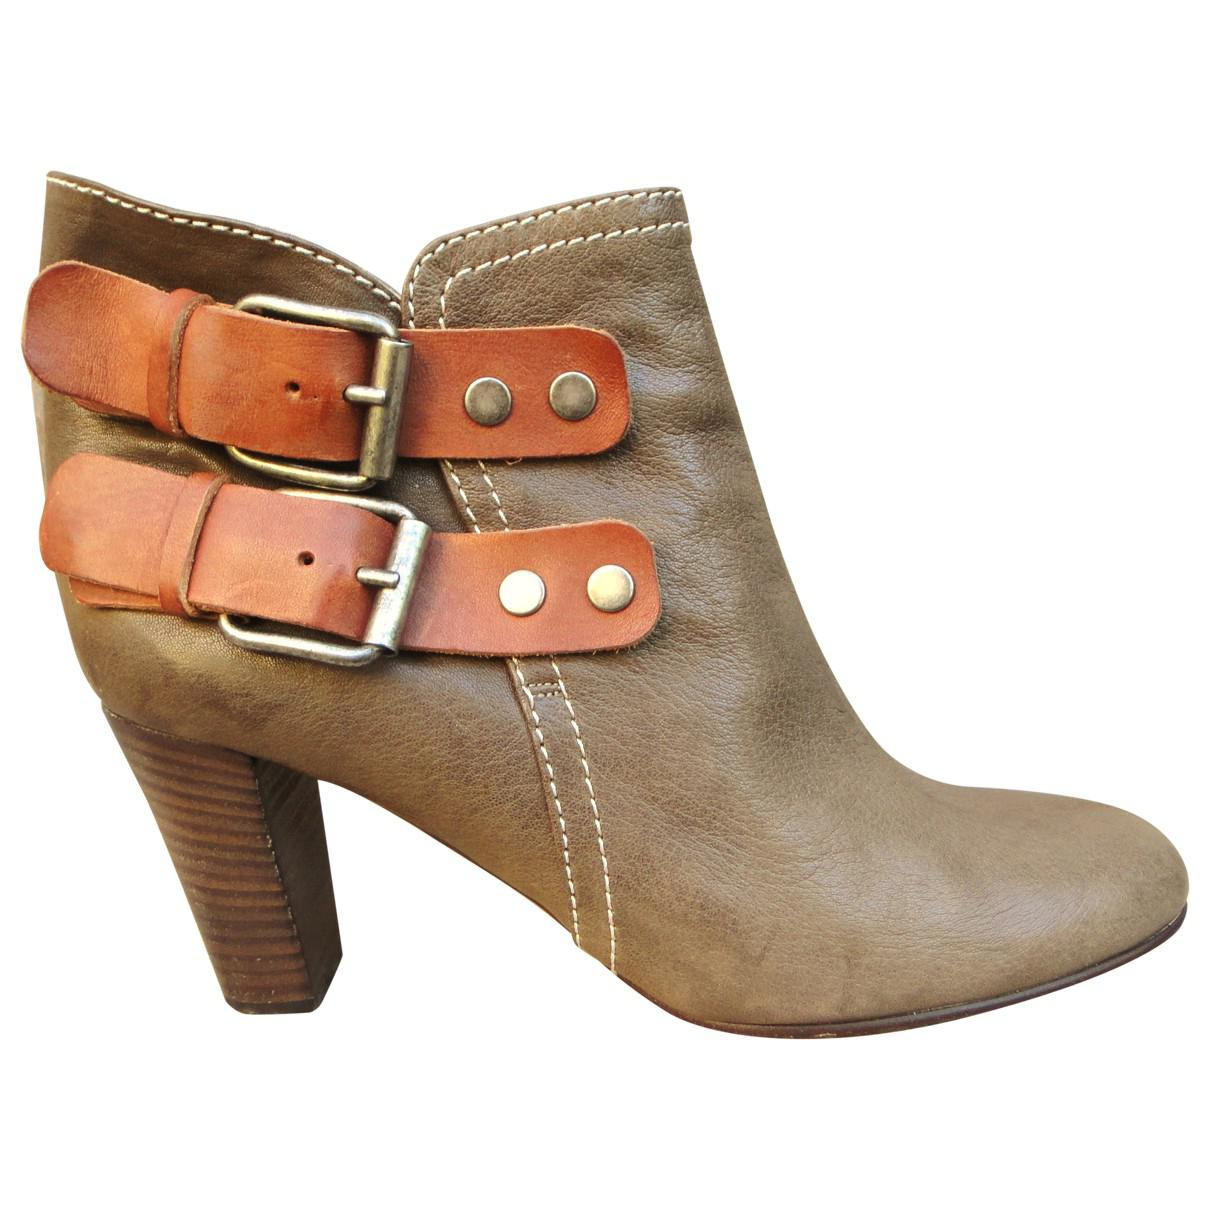 reputable site af2cd 1f6b4 chloe-Khaki-Pre-owned-Khaki-Leather-Ankle-Boot.jpeg